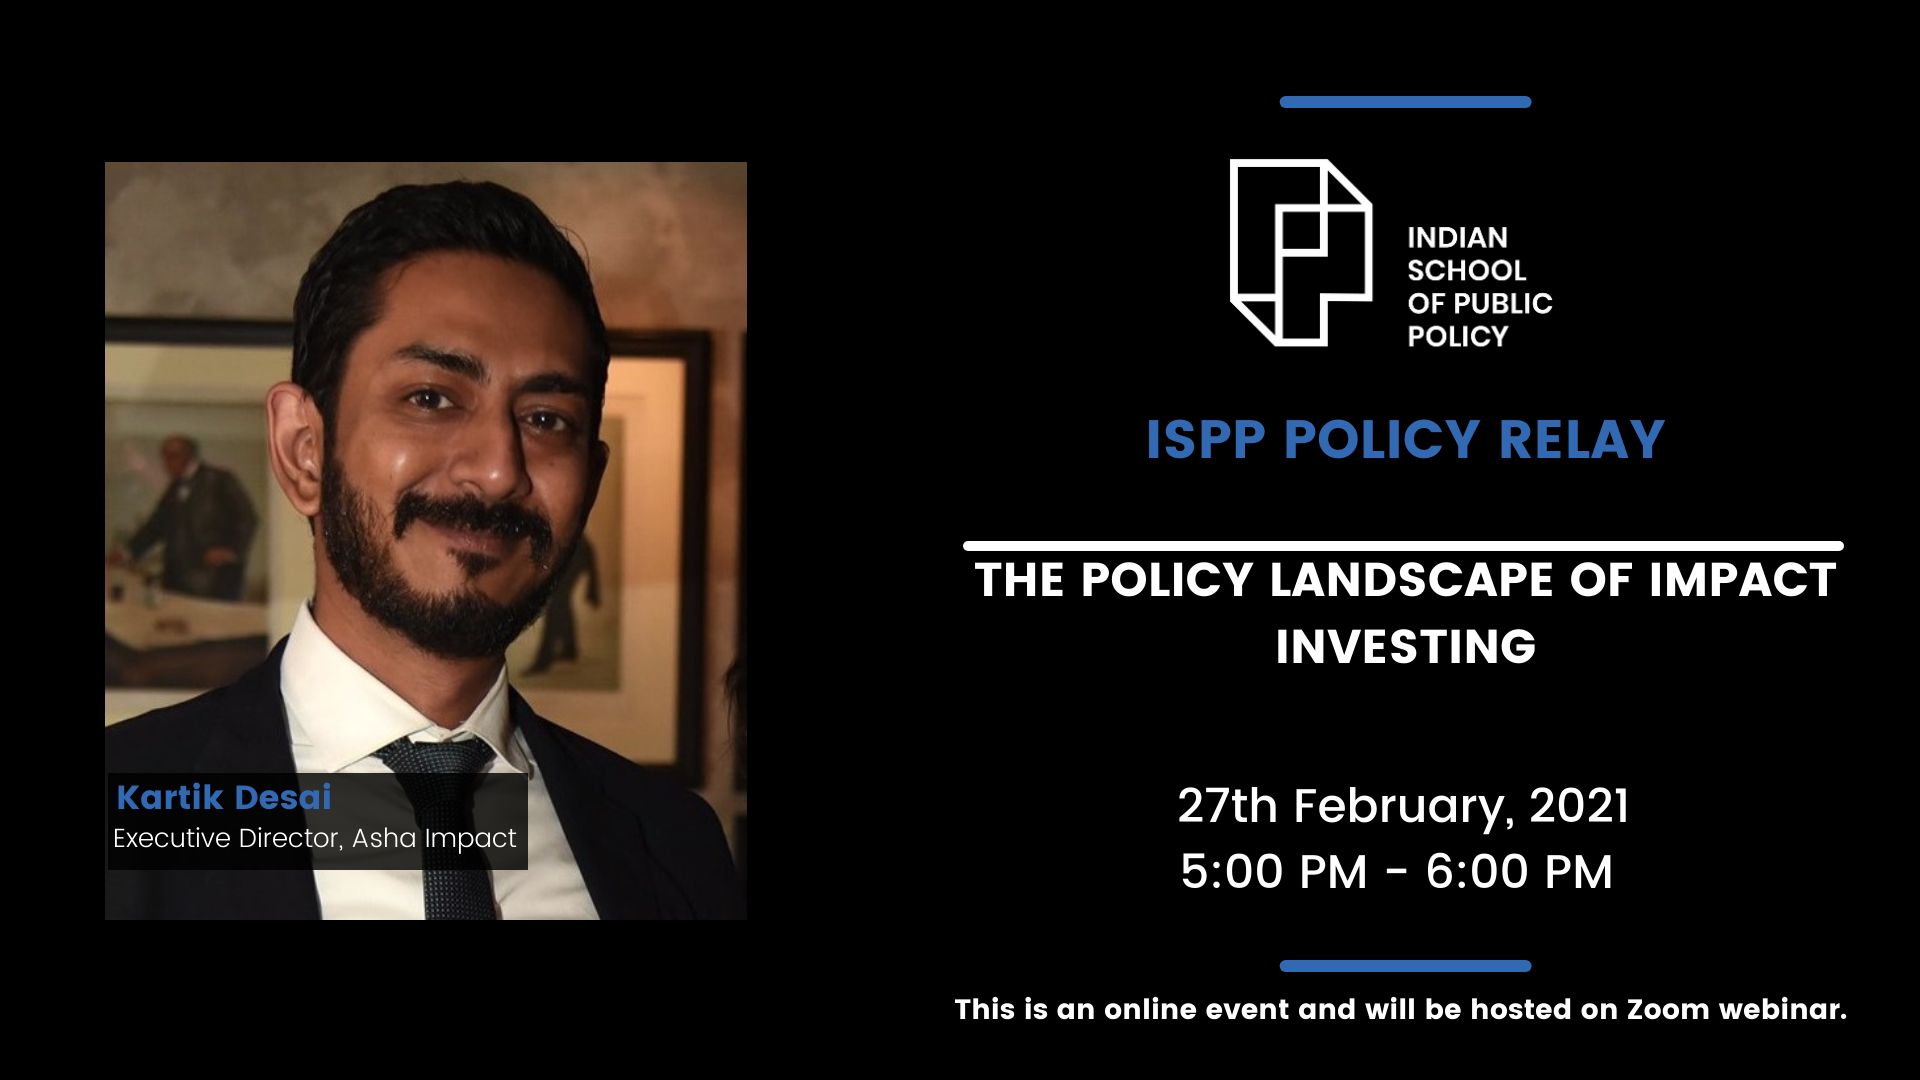 The Policy Landscape of Impact Investing with Kartik Desai